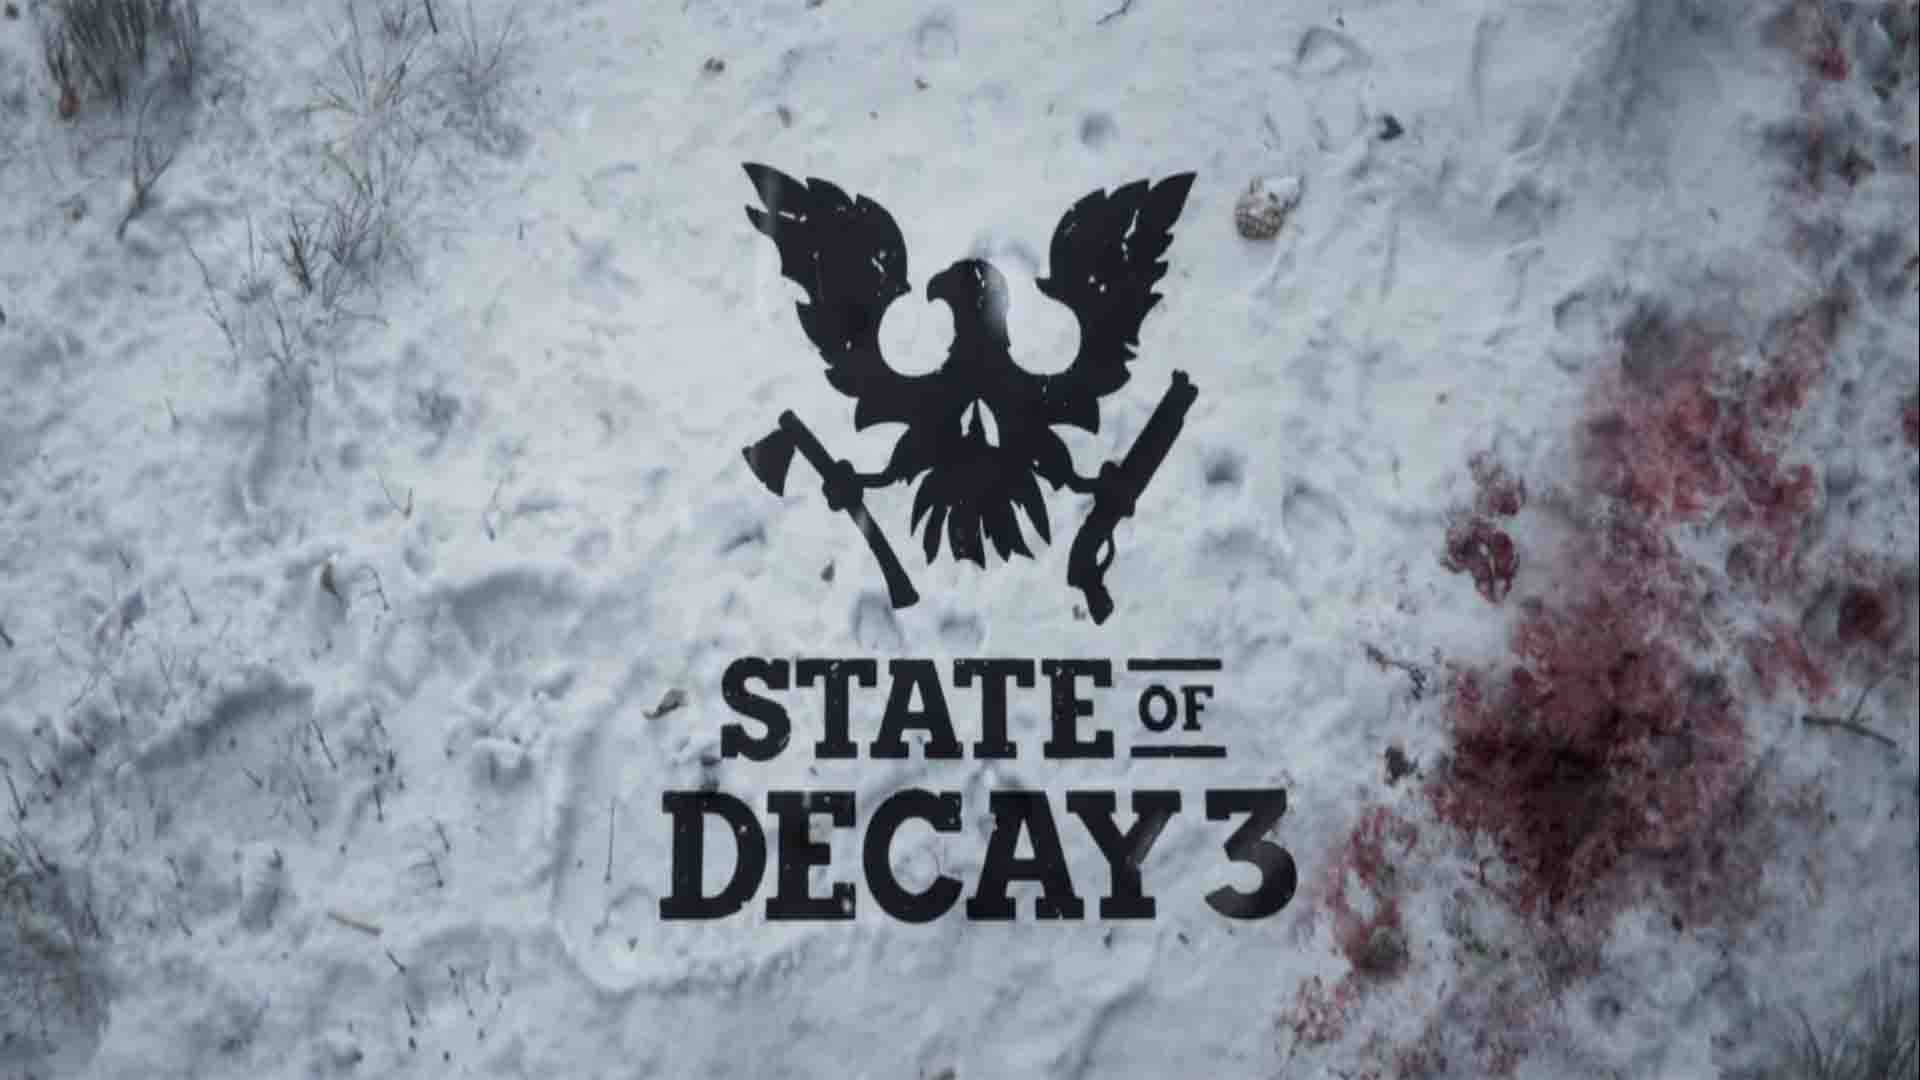 state of decay 3 xbox